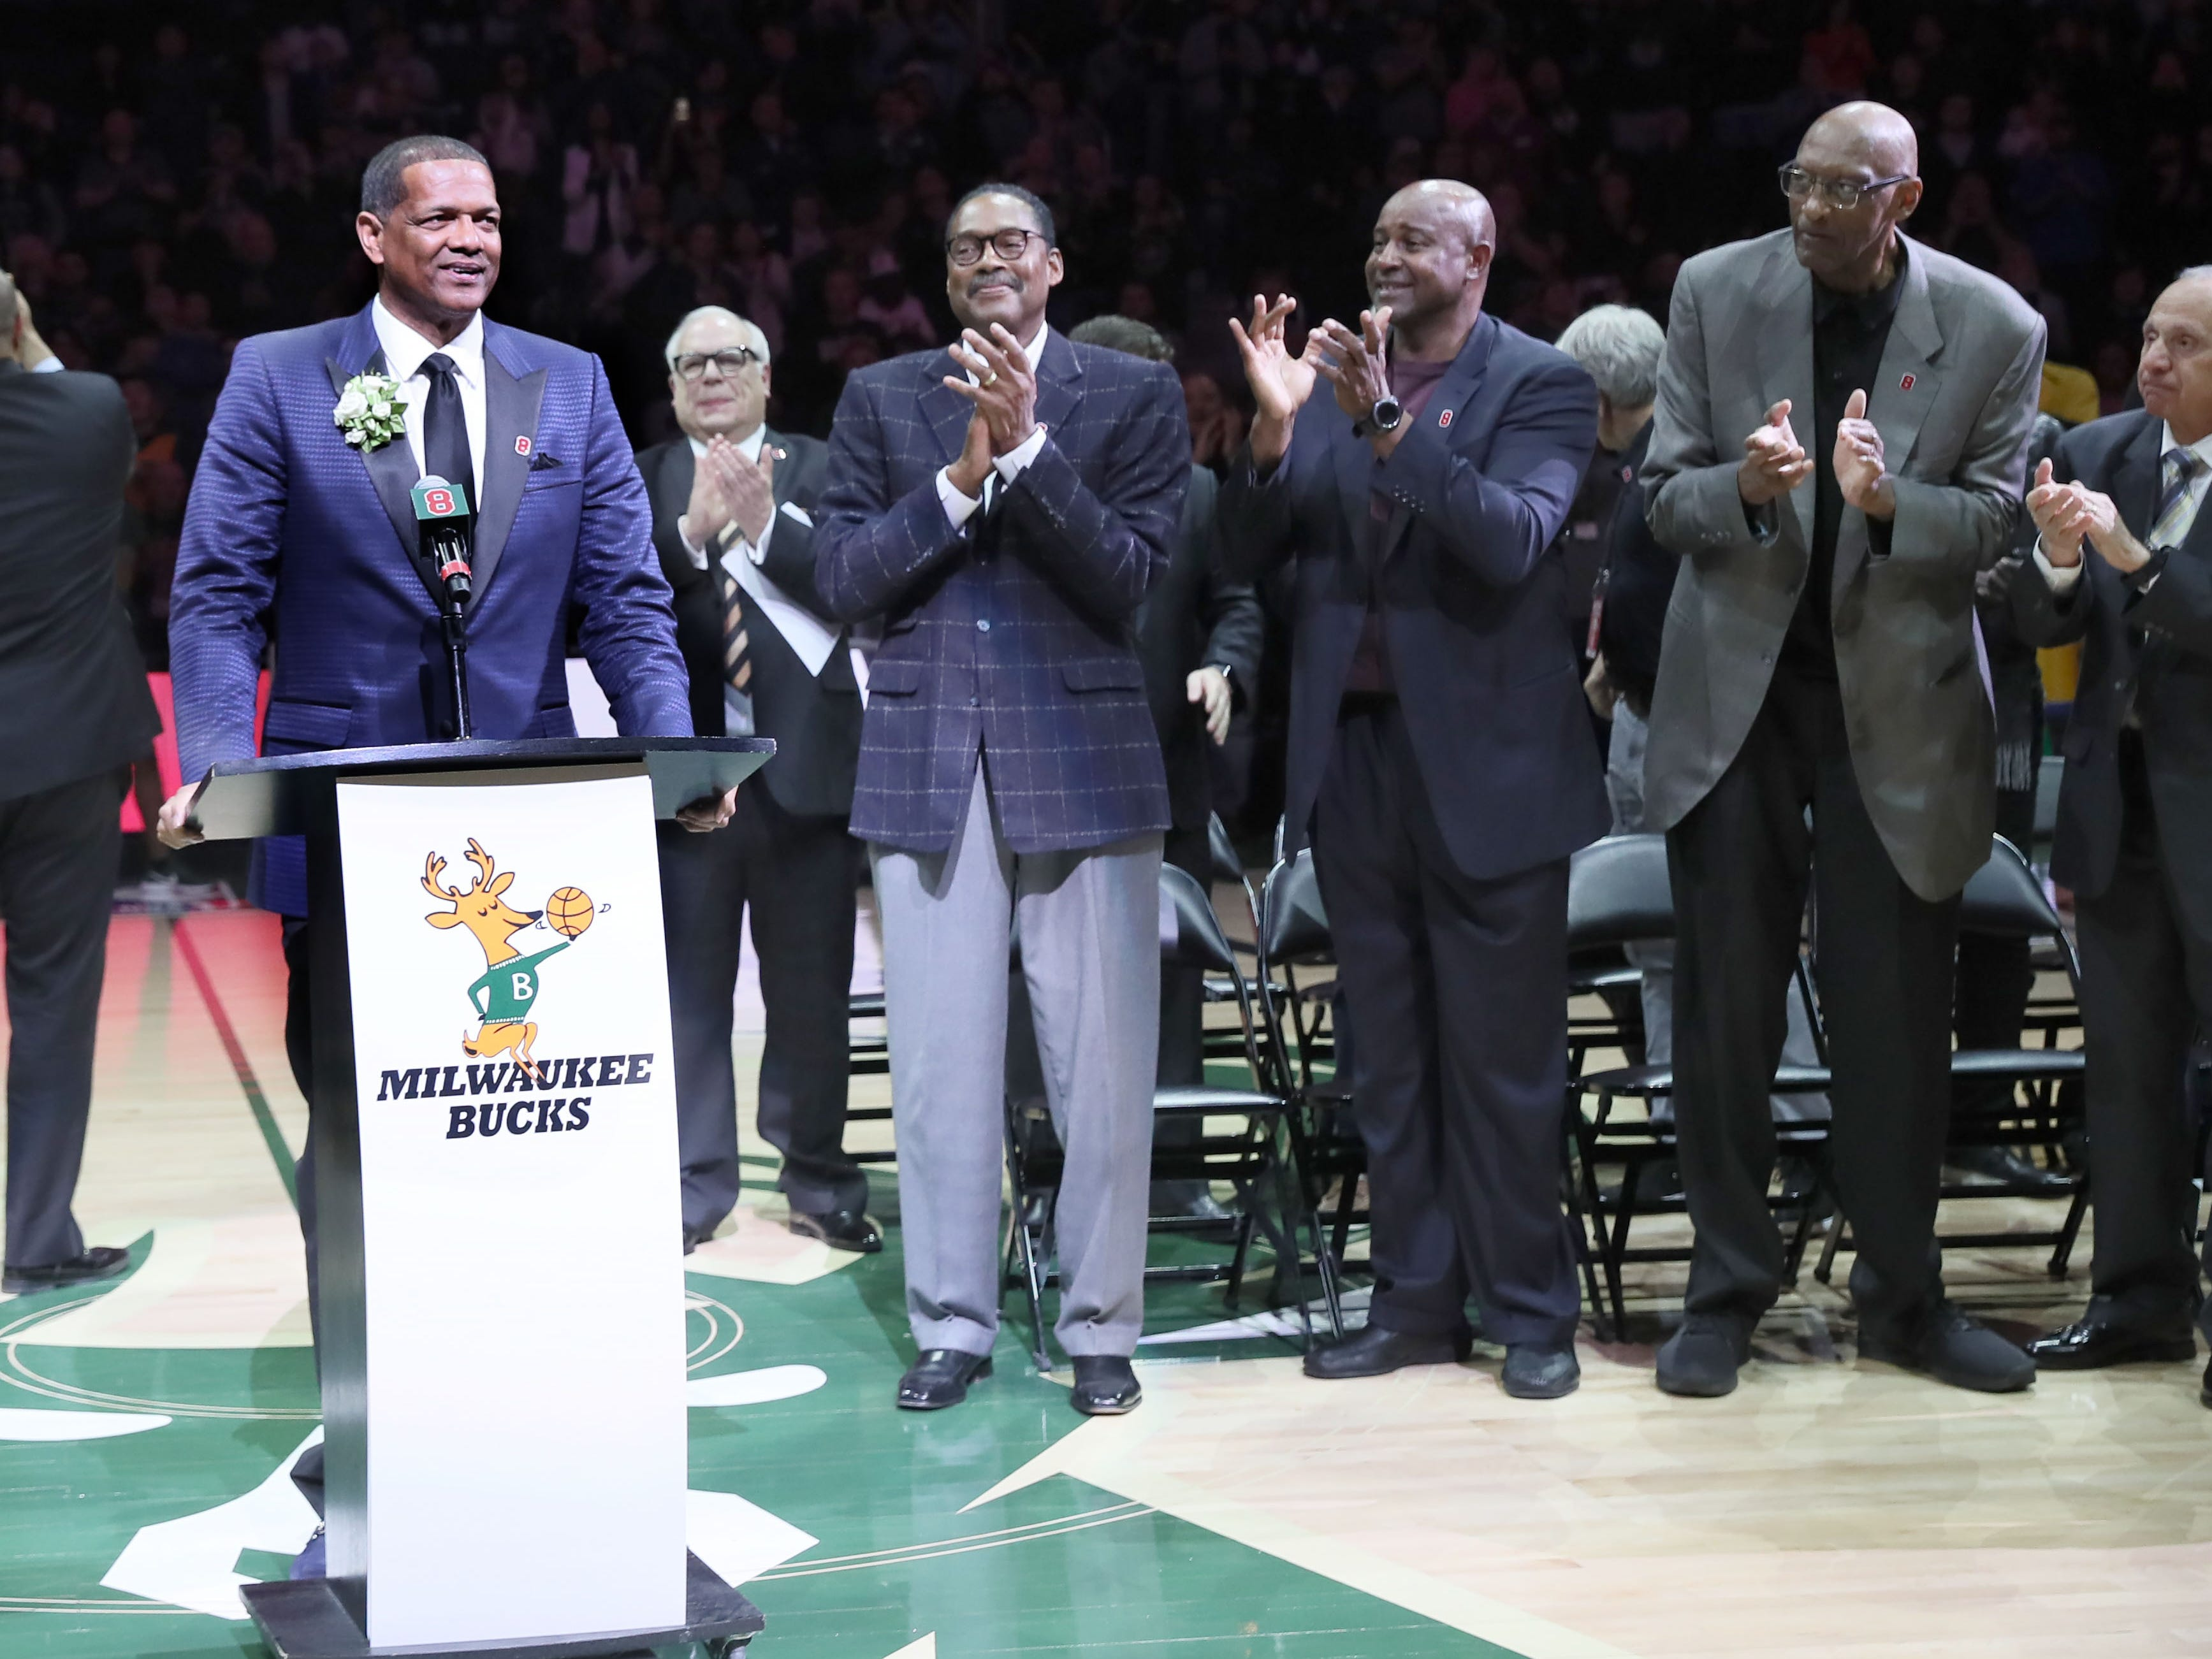 Marques Johnson (left) takes the dais during a halftime ceremony Sunday at Fiserv Forum that saw his number retired by the Bucks as Jim Paschke (from left) and former teammates Junior Bridgeman, Sidney Moncrief and Bob Lanier applaud.